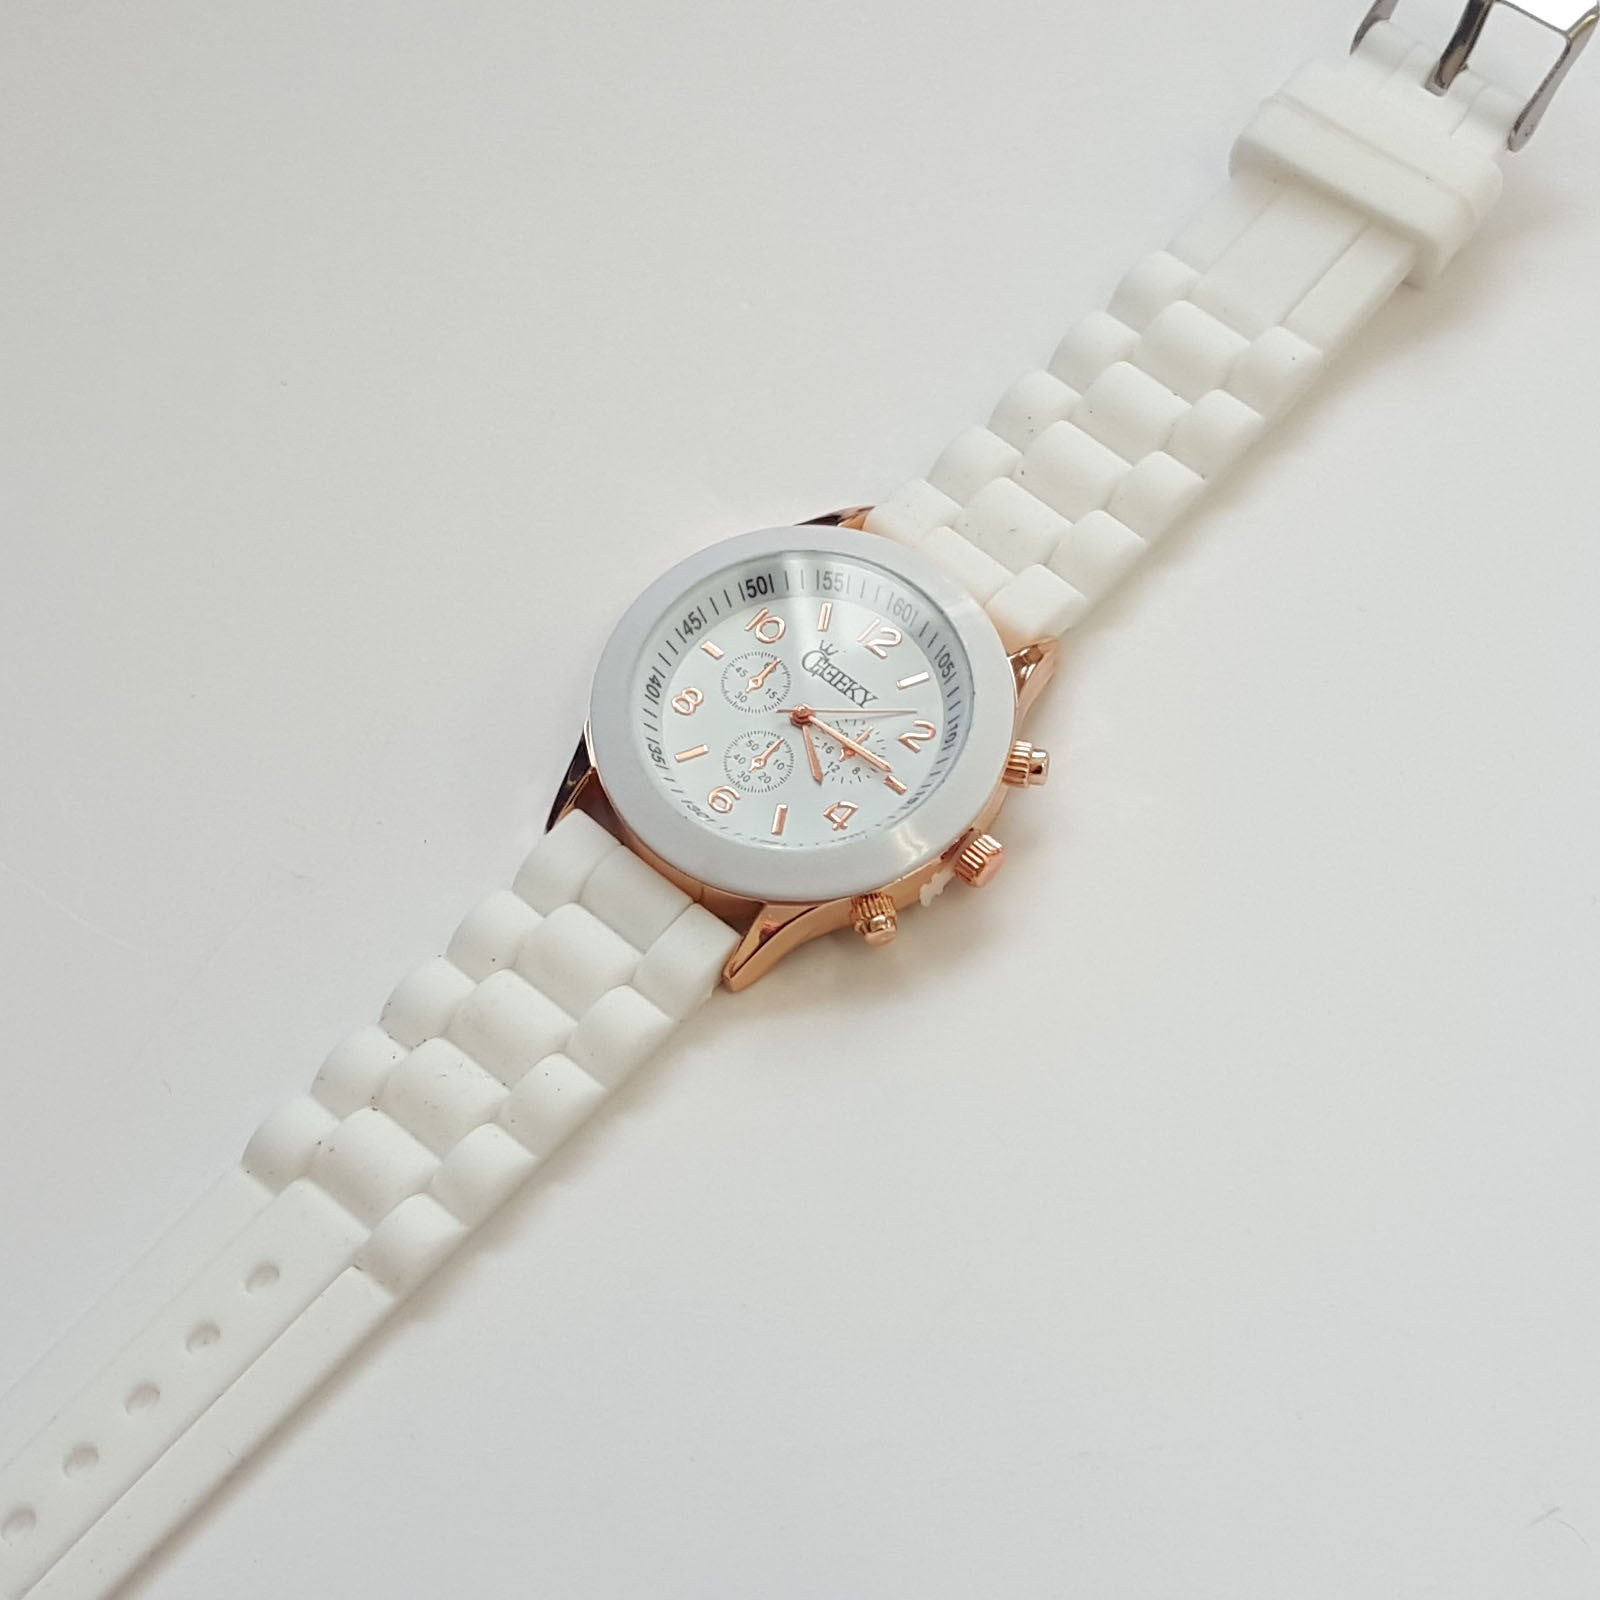 Stylish Ladies White Silicone w/ Rose Gold Fashion Watch by Cheeky HE-13 White